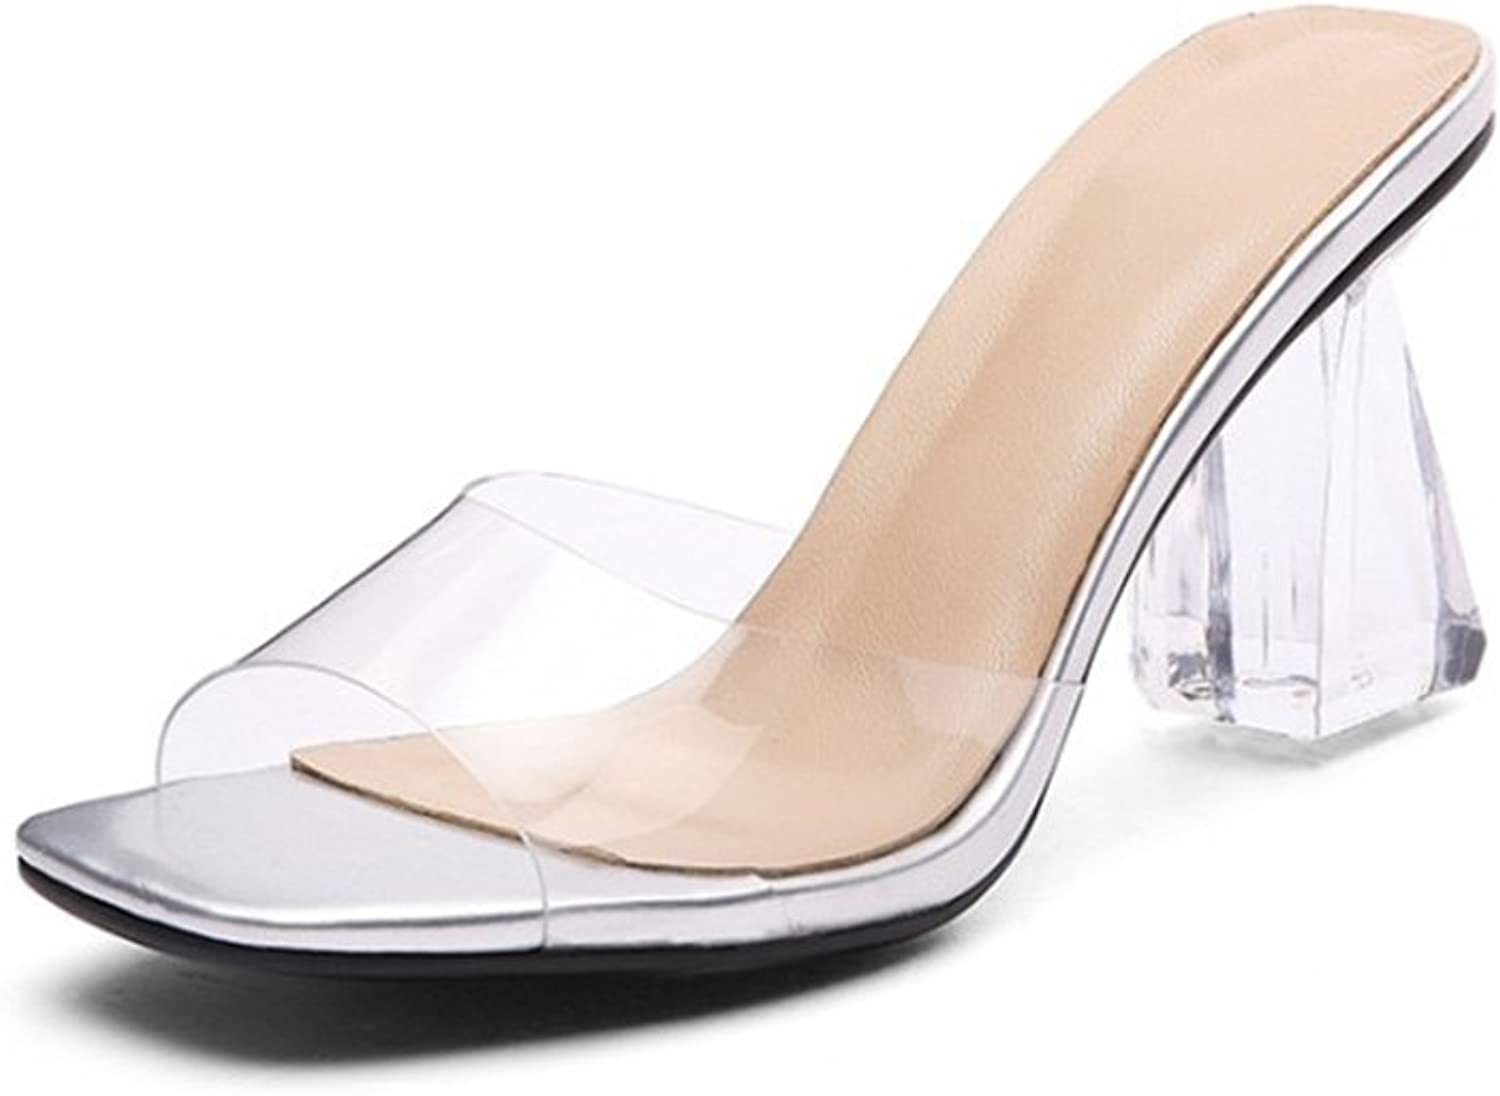 Exing Women's shoes PVC(Polyvinyl Chloride) Summer Fall Rough Heel shoes Fashion Crystal Square Head Sandals Slipper for Office & Career Dress